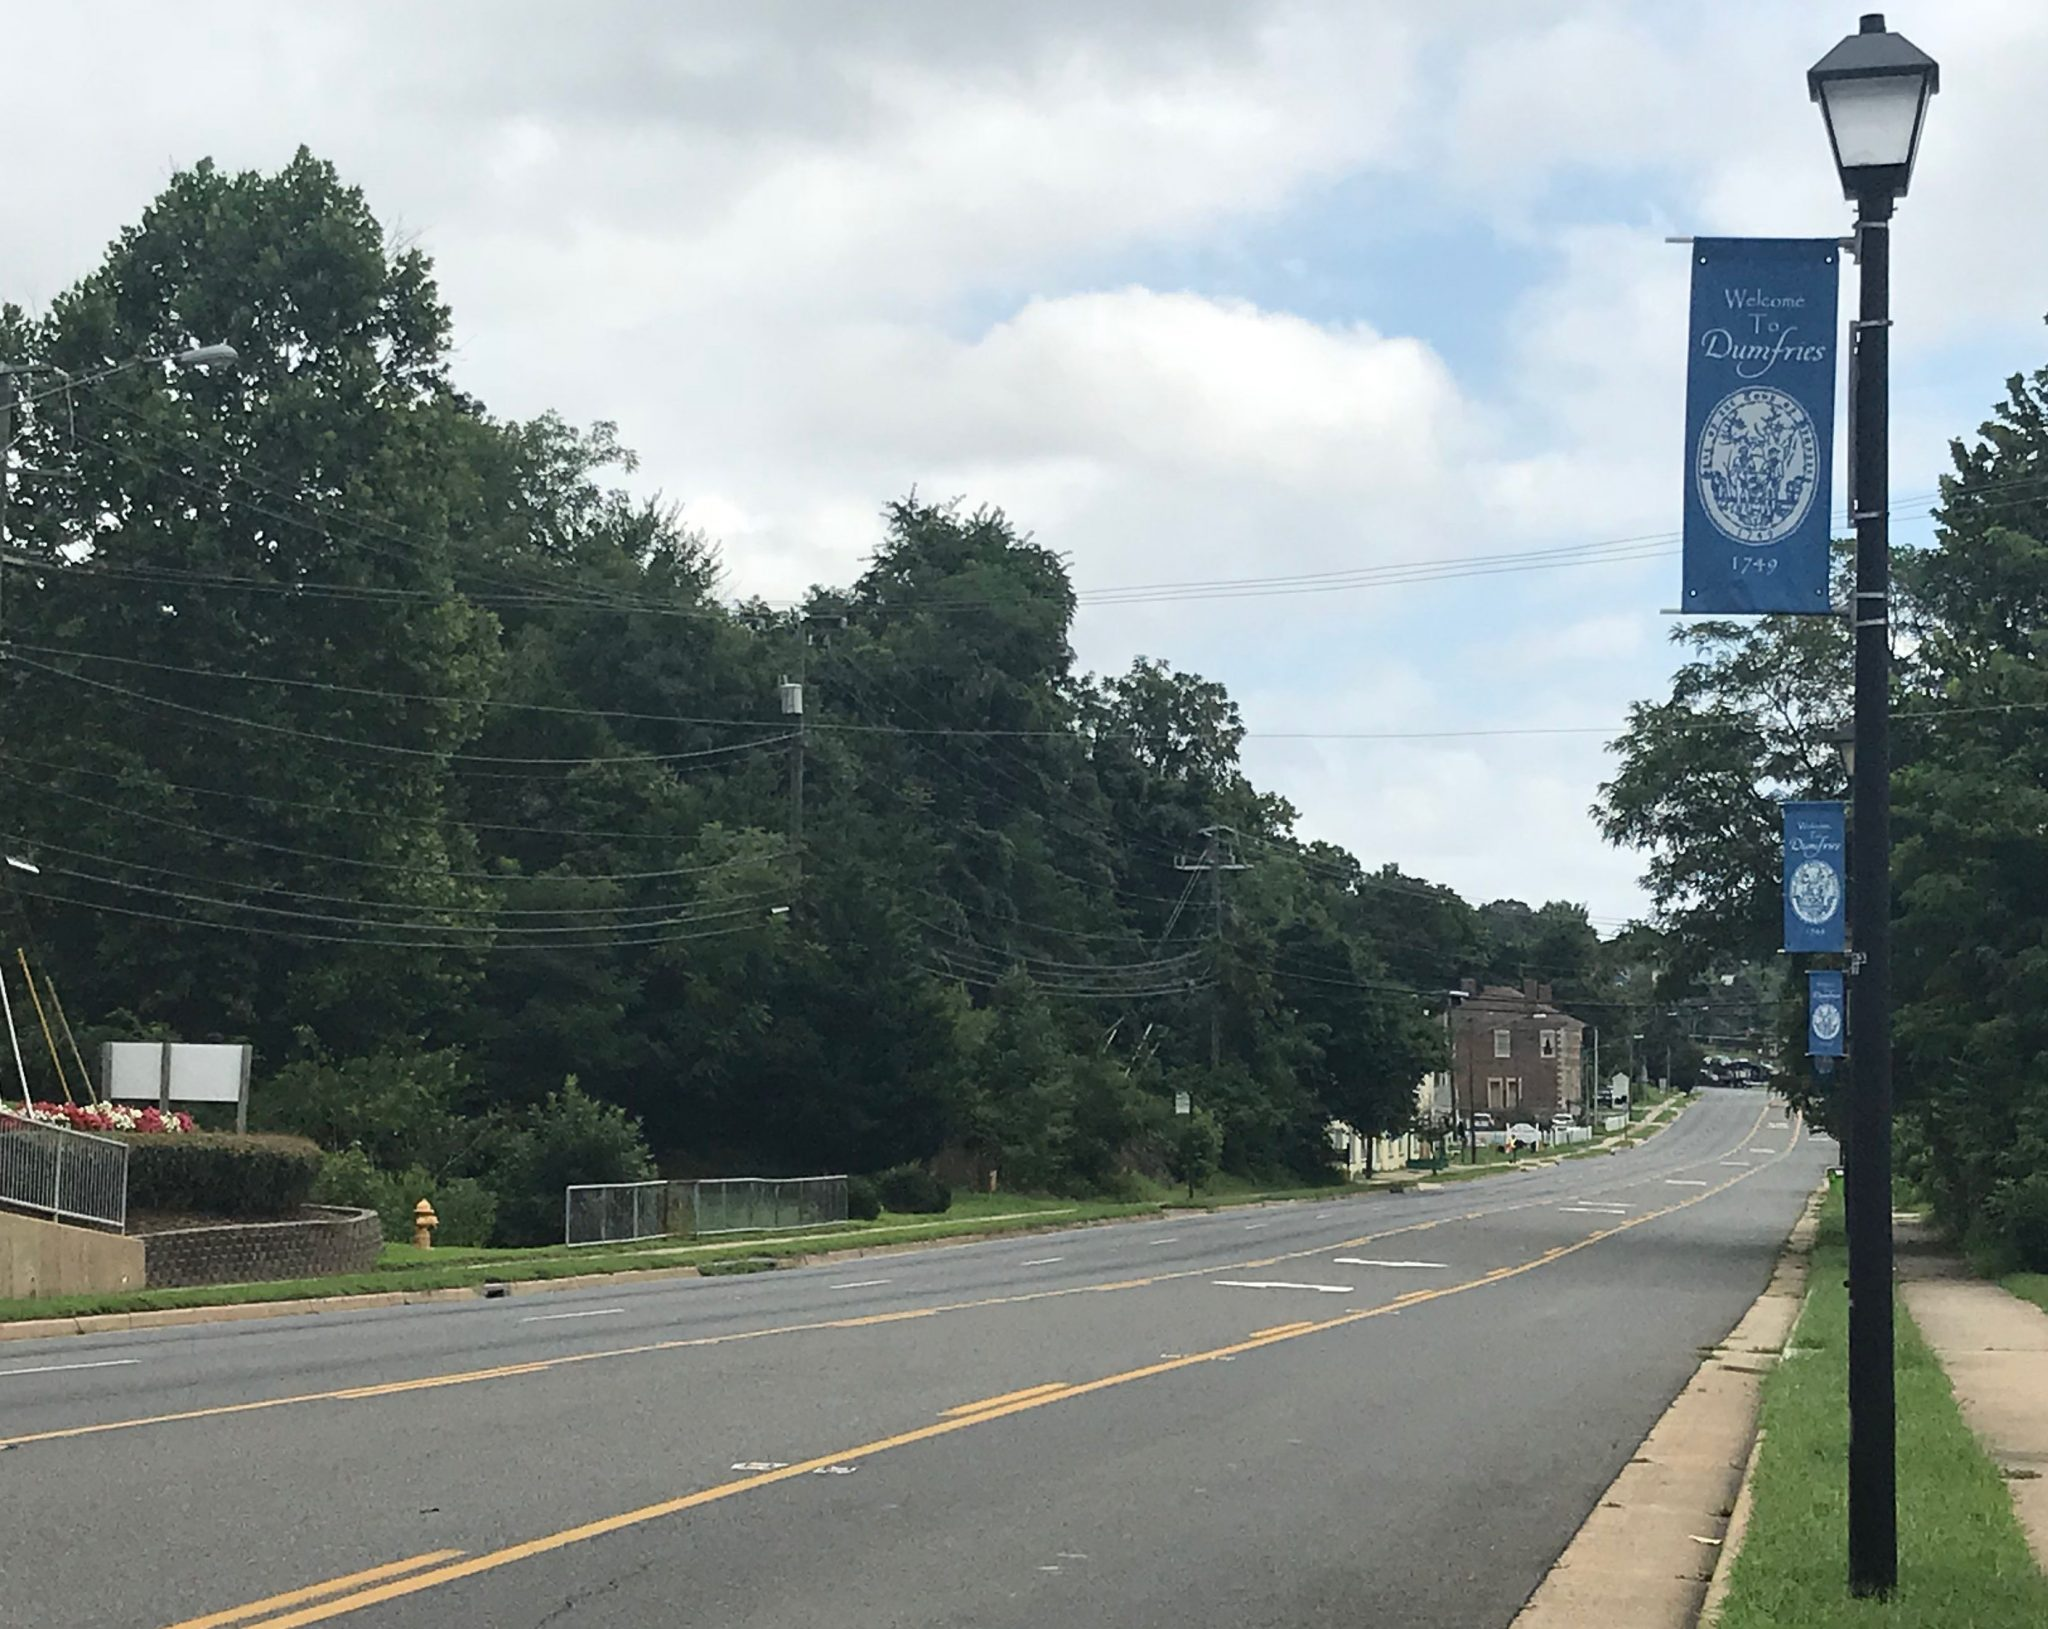 Op-ed: Potomac Shores proposed parkway vs. Town of Dumfries